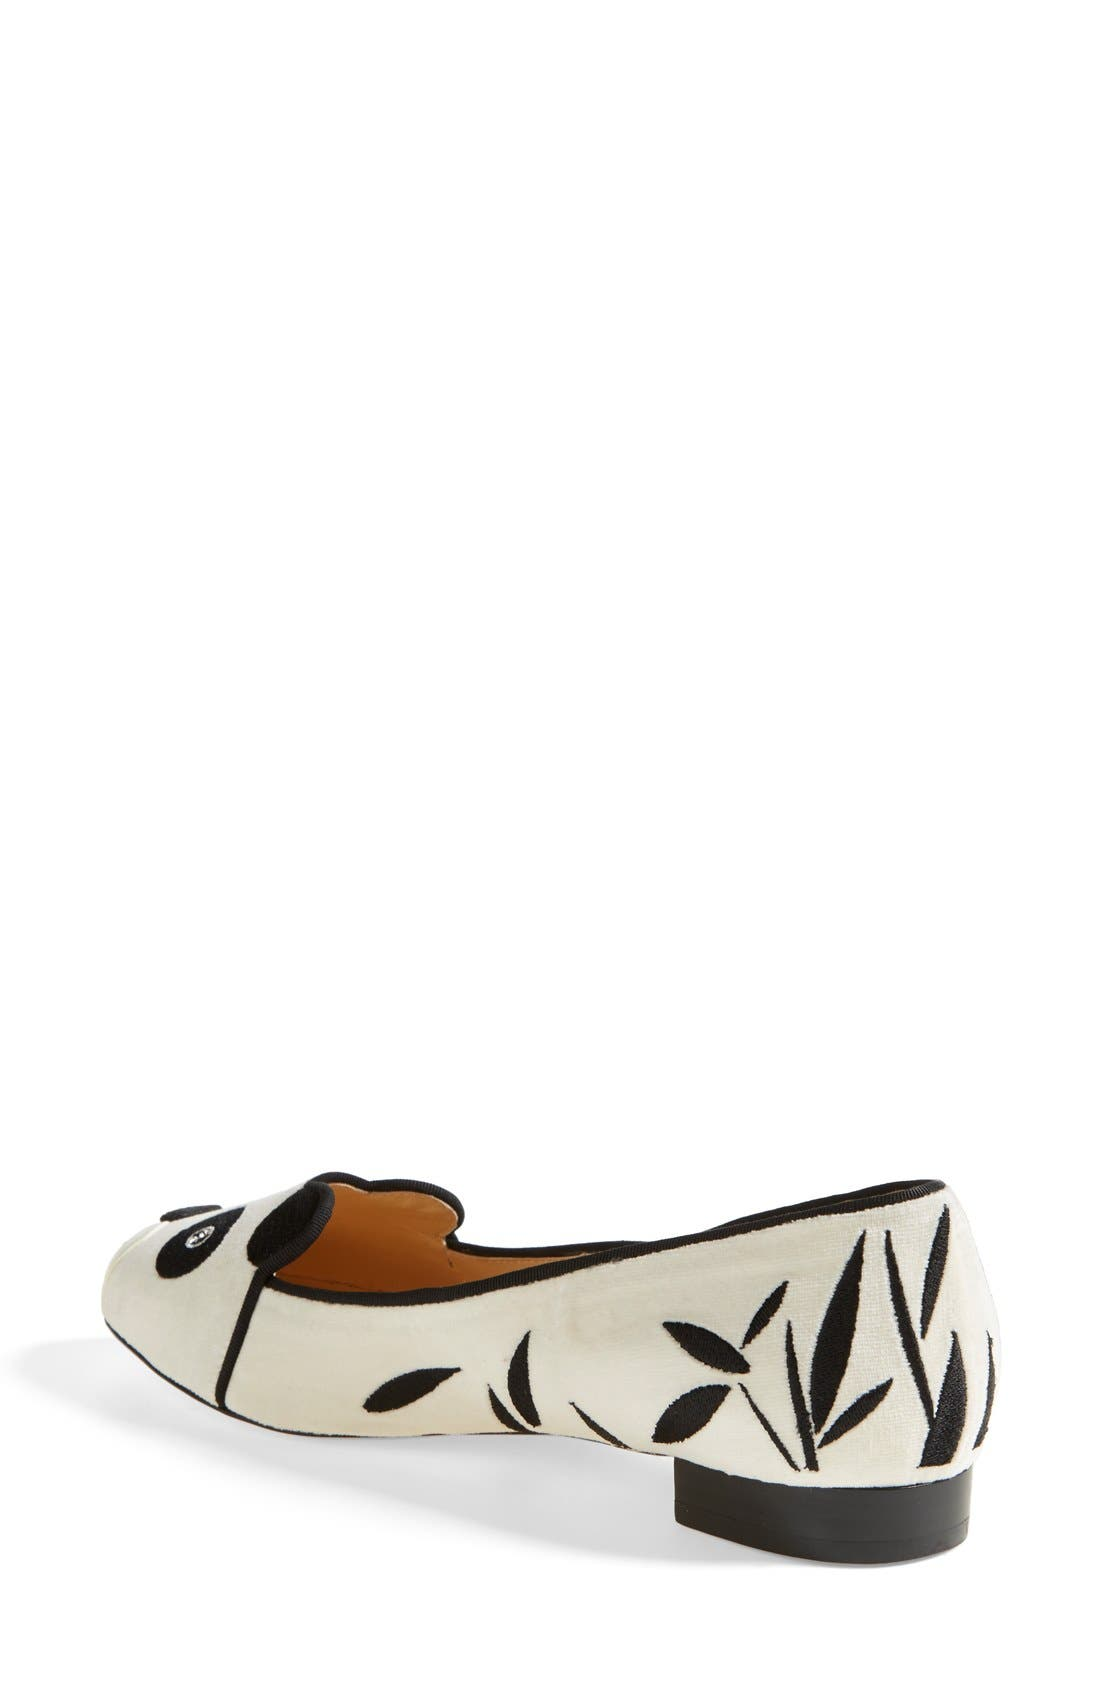 Alternate Image 2  - Charlotte Olympia 'Panda' Silk Velvet & Calfskin Leather Flat (Women)